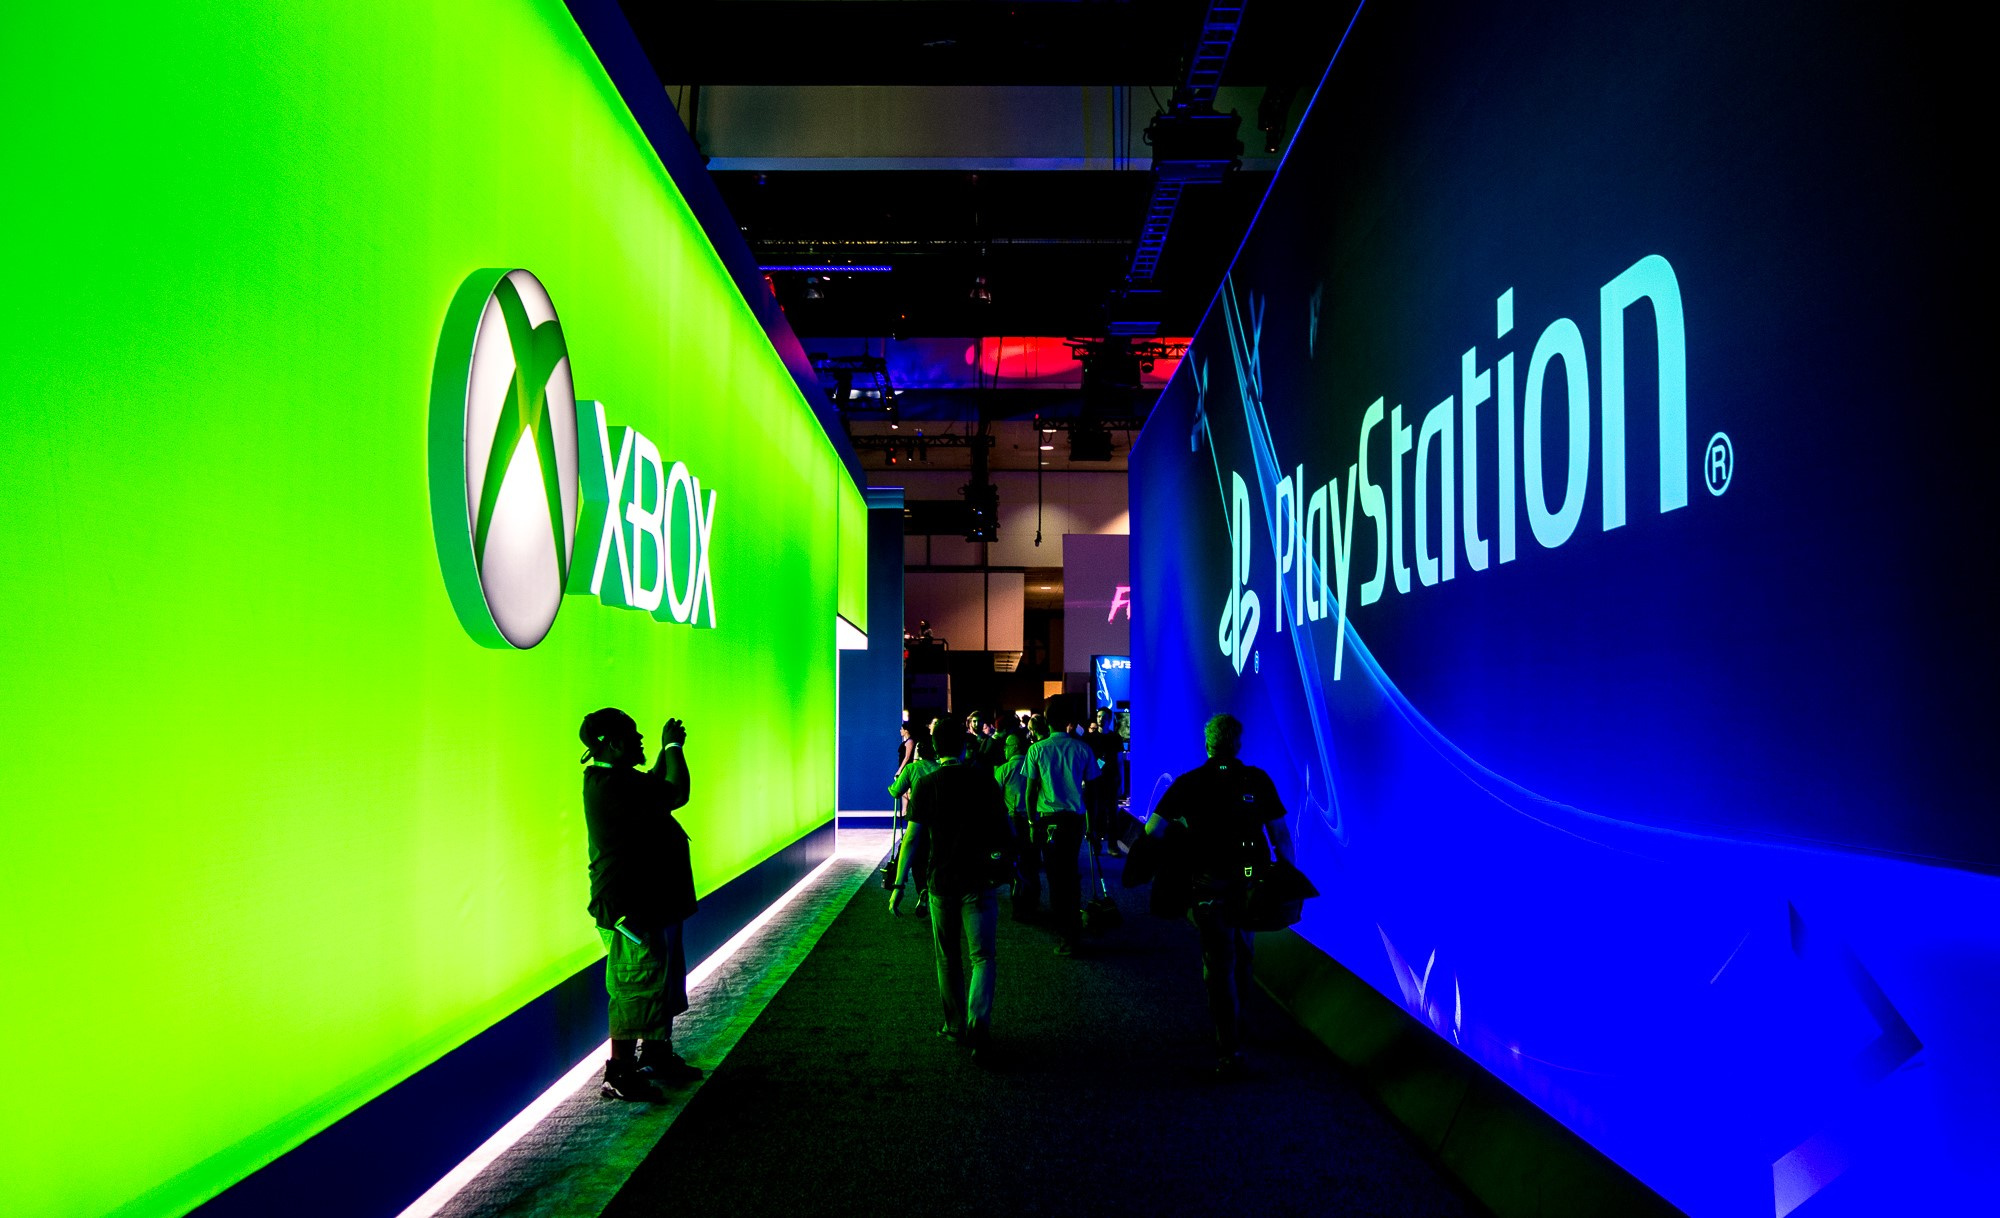 PS5 and Xbox Series X Release Date Delayed Coronavirus can Halt the Production of the Consoles